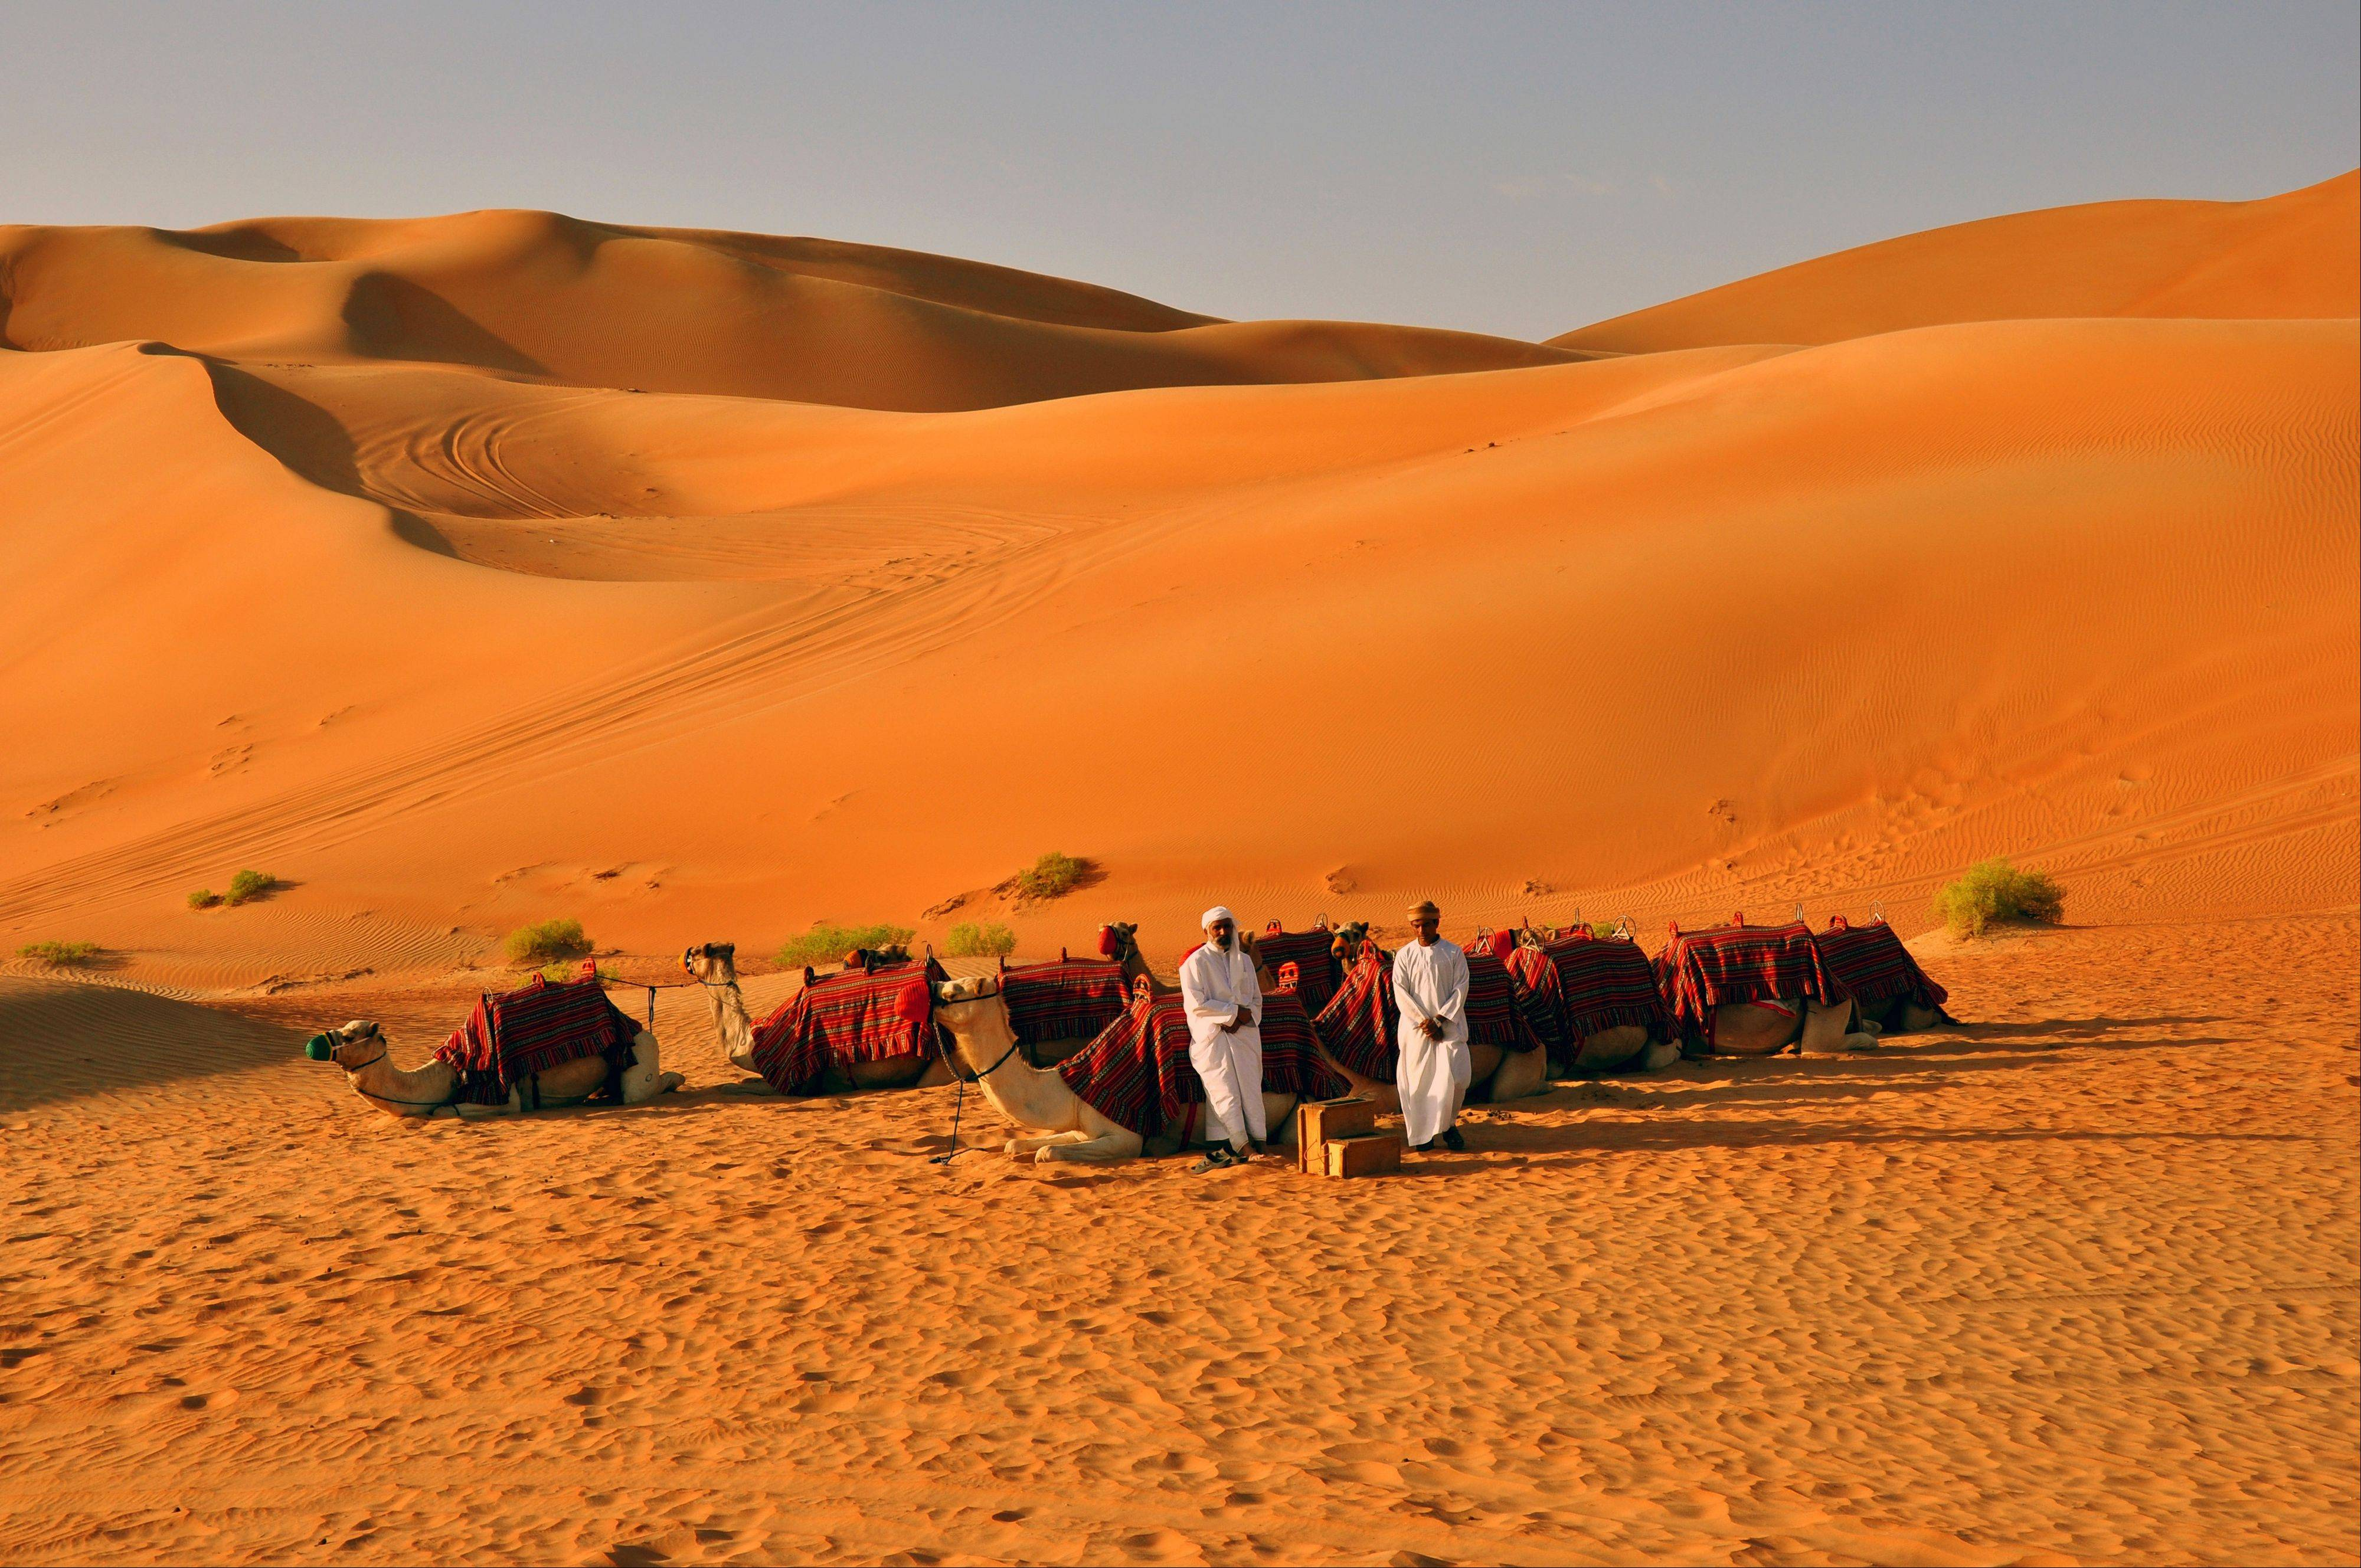 Dunes rise over valleys in the Liwa Desert, part of the world's largest uninterrupted sand desert.